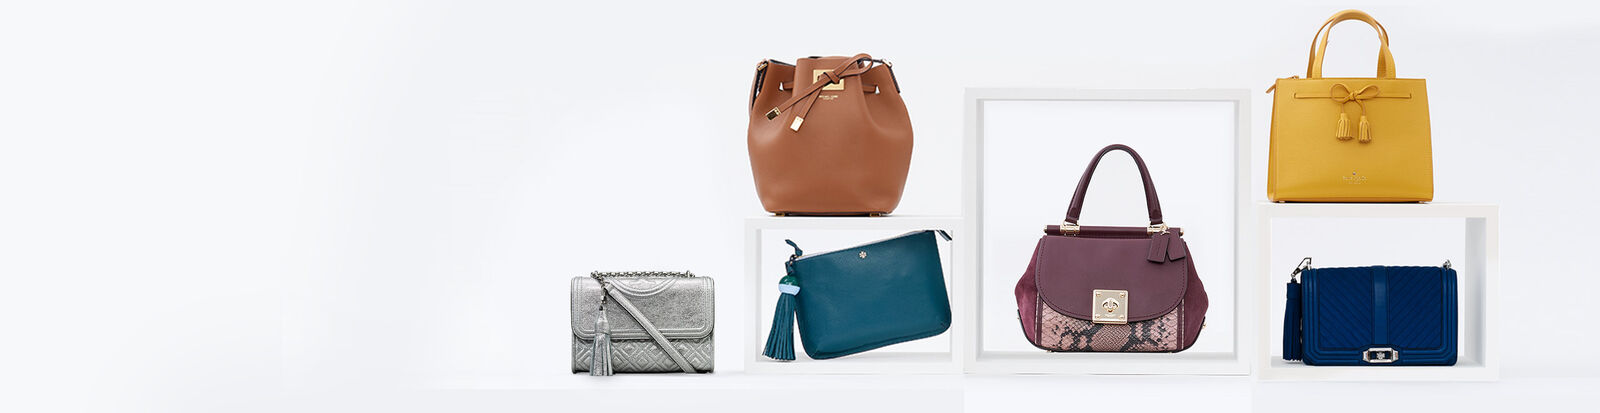 Get the latest by Michael Kors, Kate Spade, and more from $59.